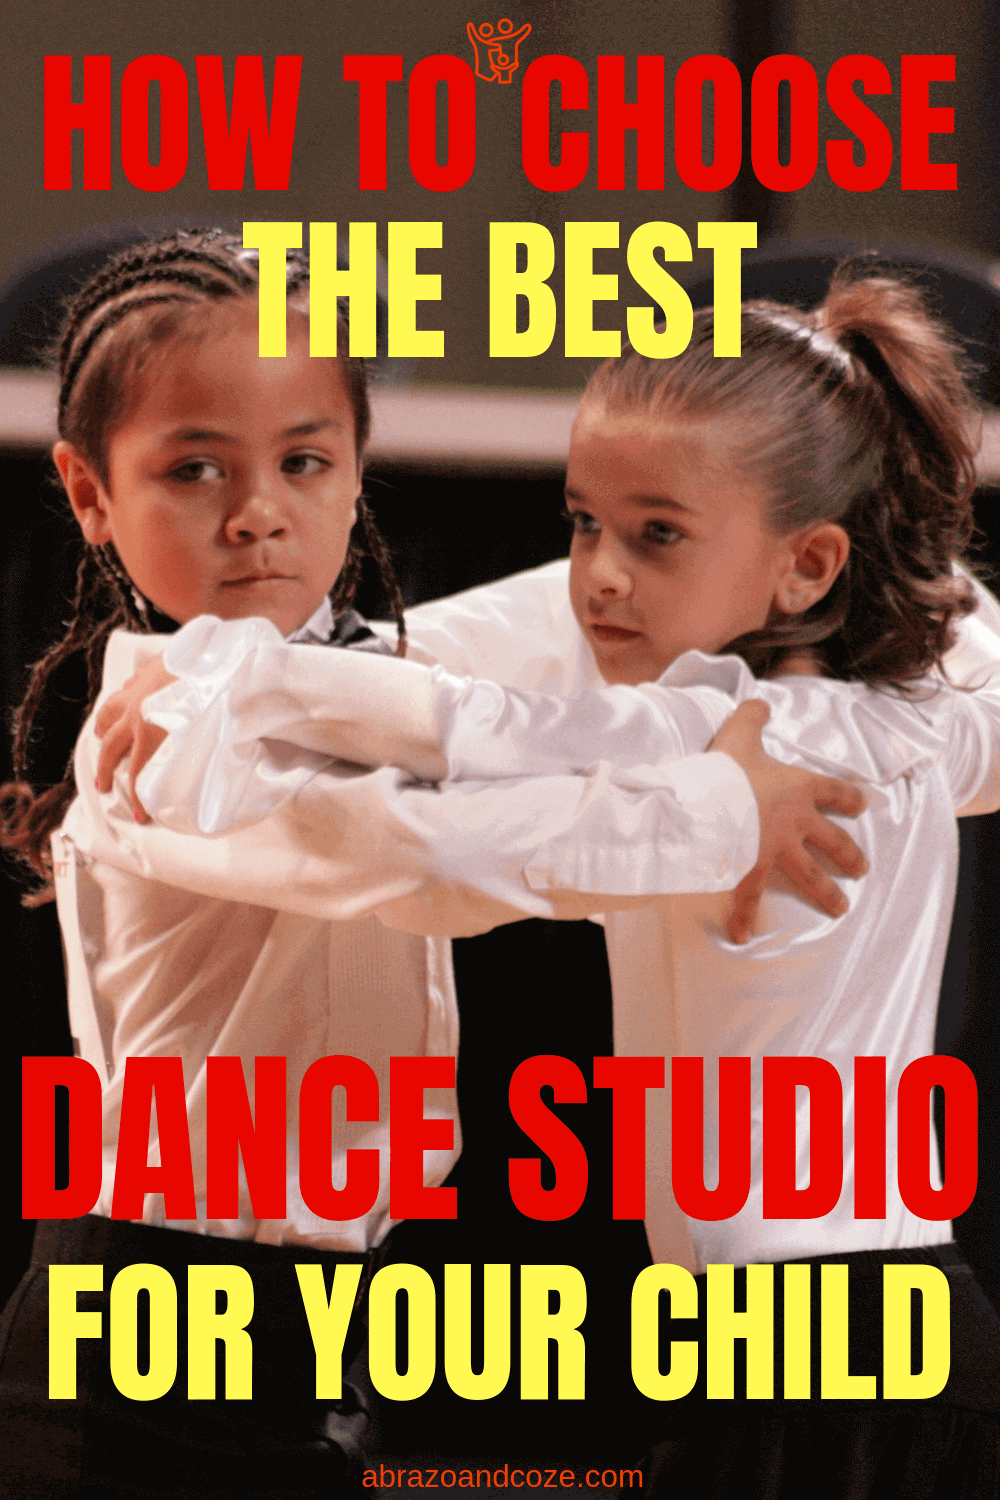 How to Choose the Best Dance Studio for your Child. Once you do, your children can have fun ballroom dancing like the children in the photo.